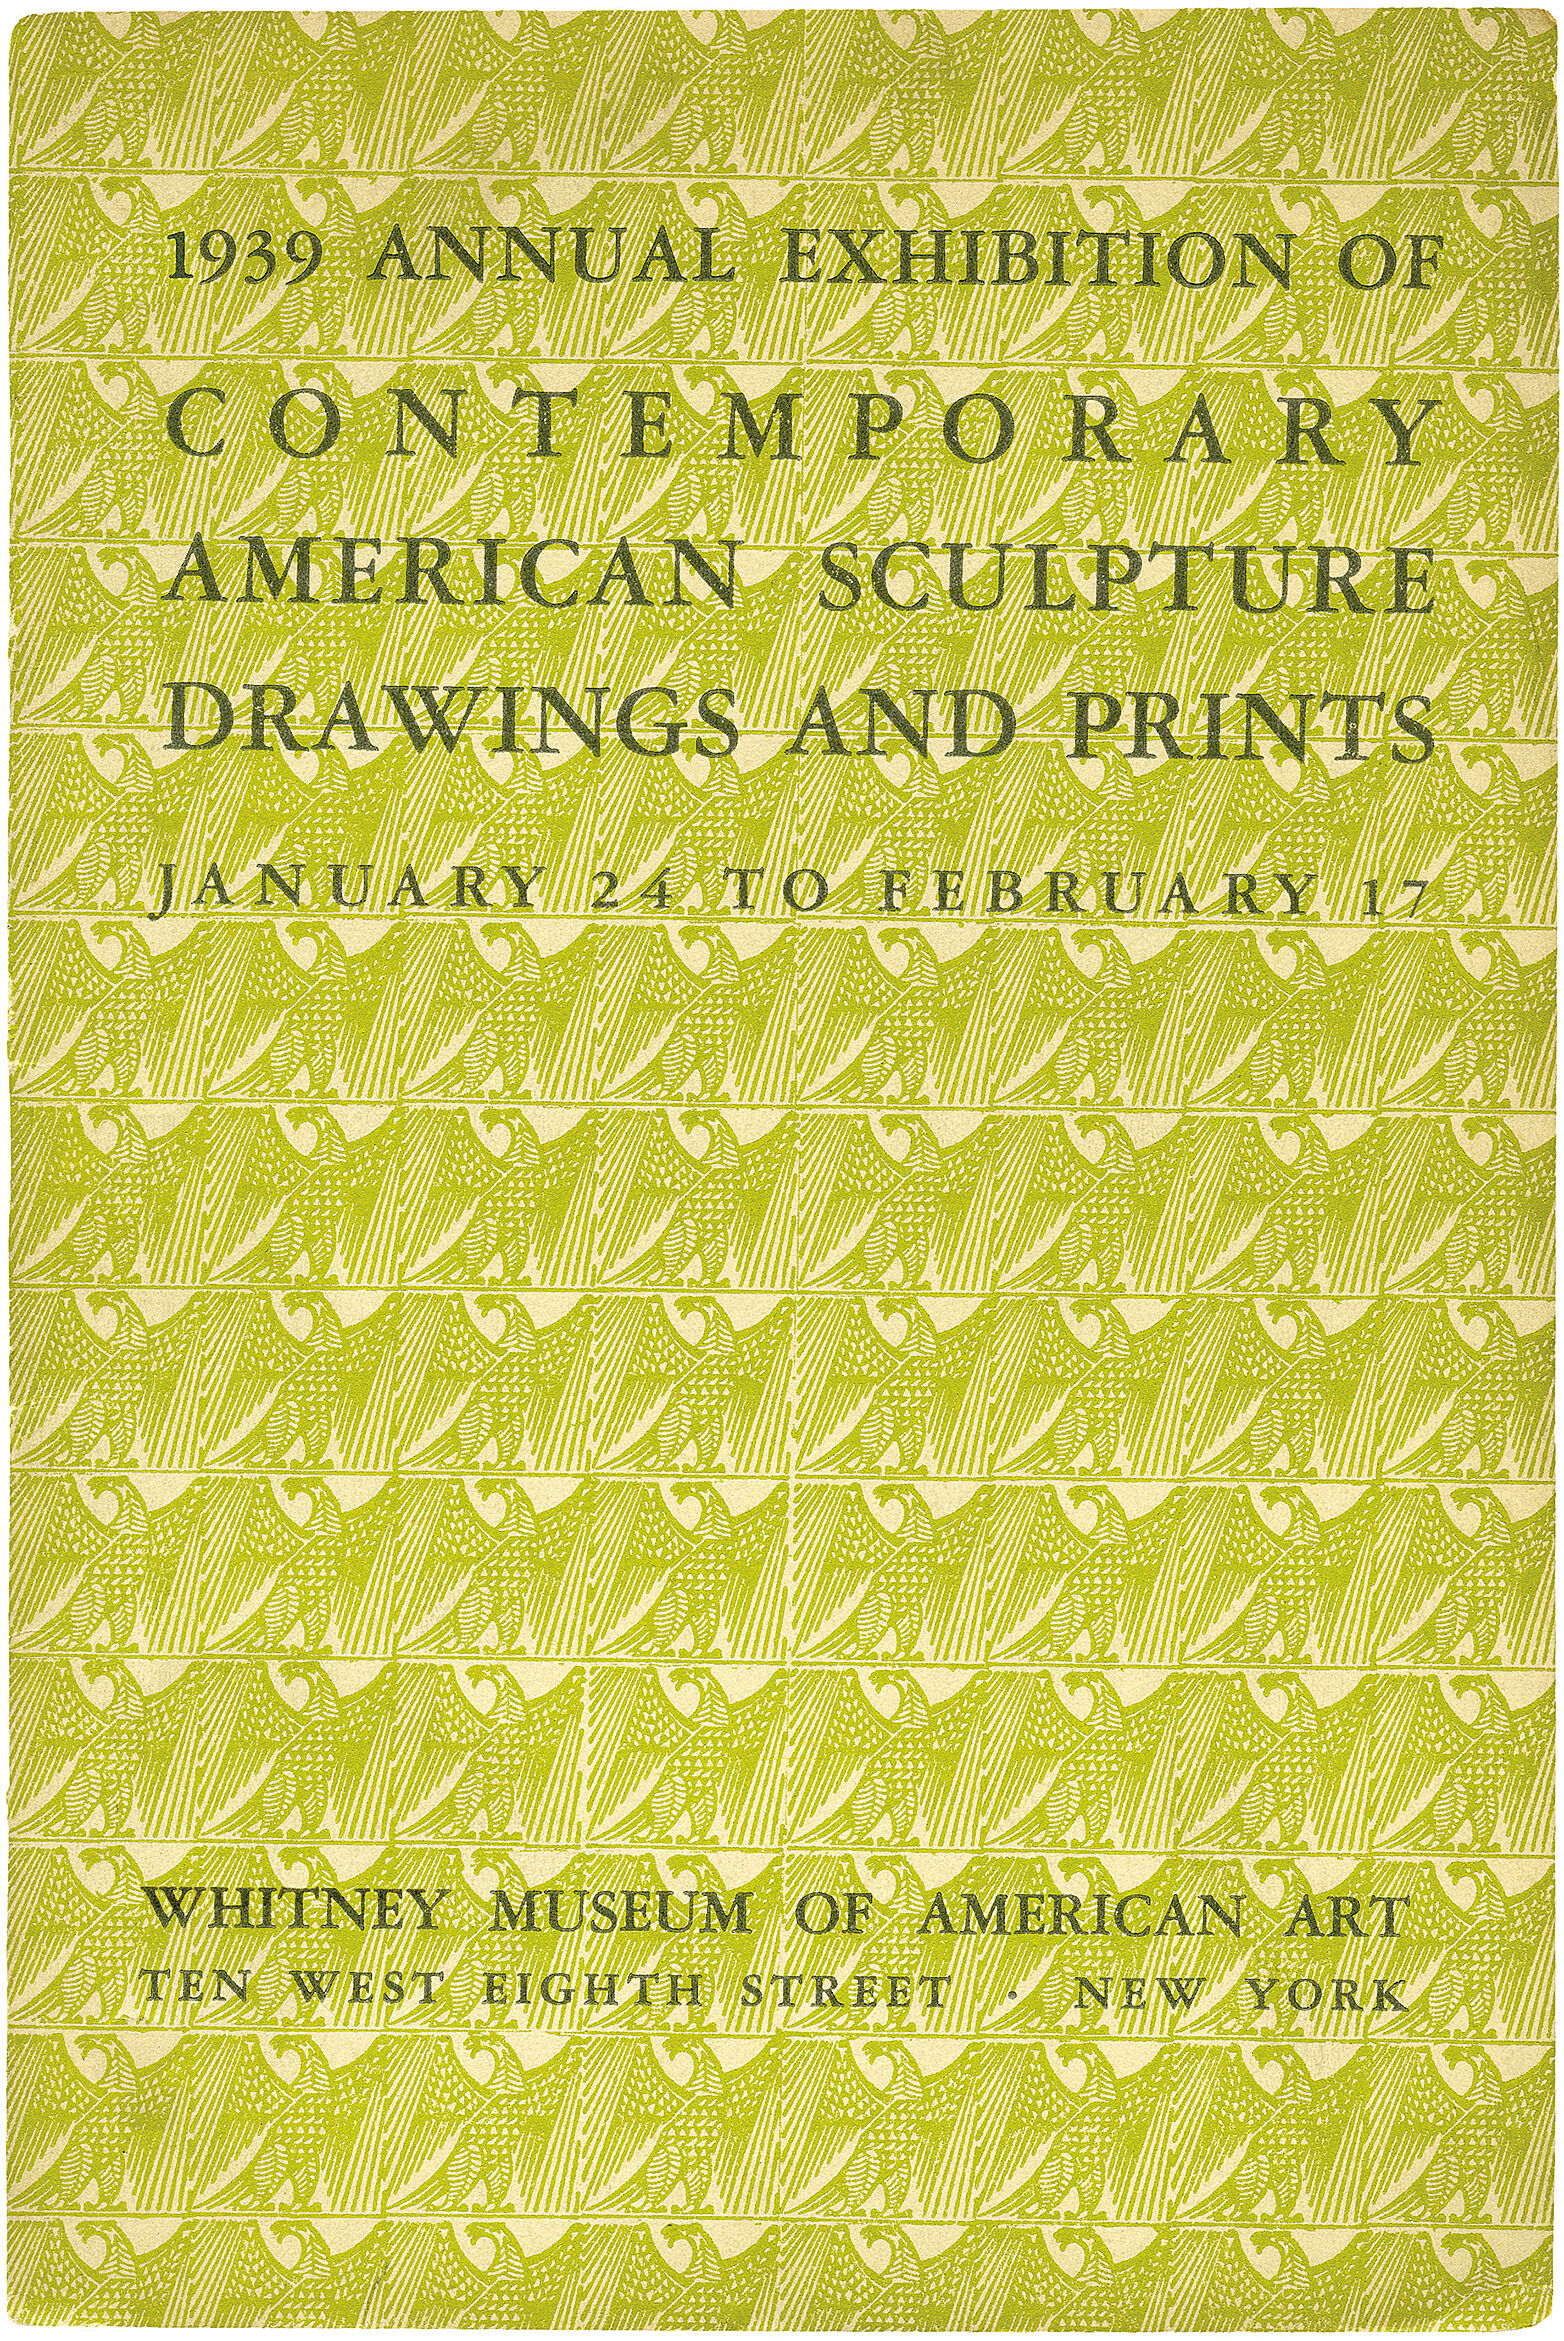 Cover for 1939 Annual Exhibition of Contemporary American Sculpture, Drawings and Prints catalogue